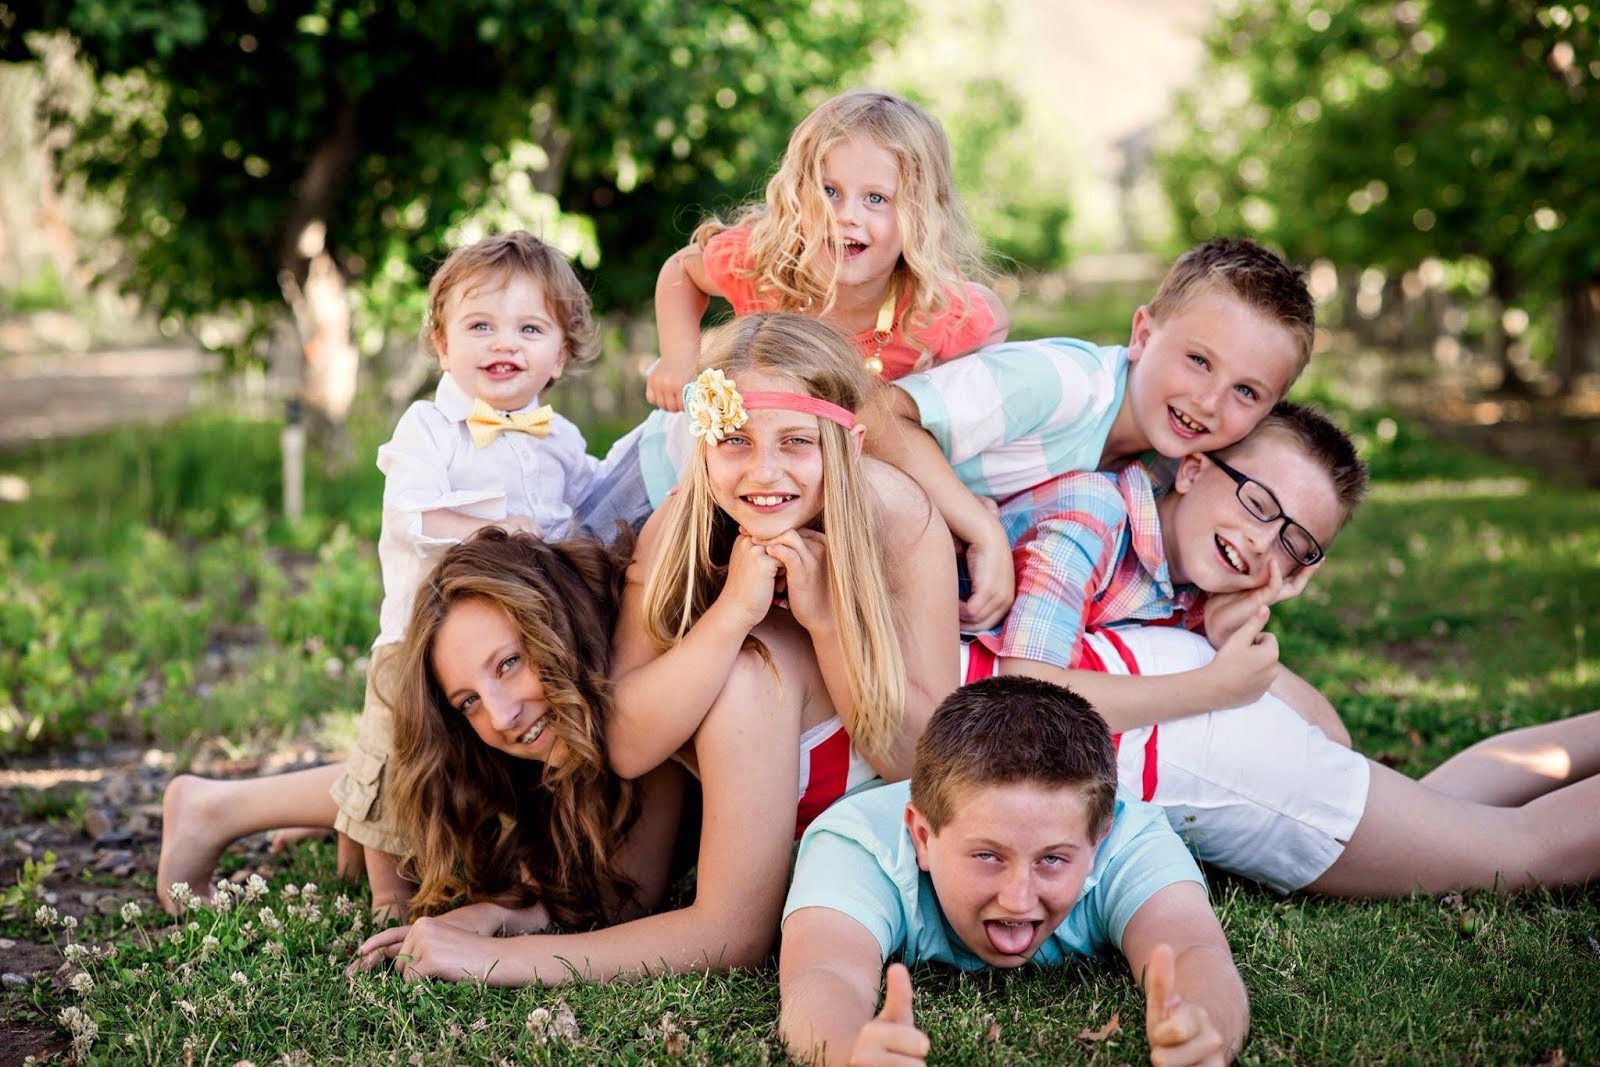 My pile of blessings!